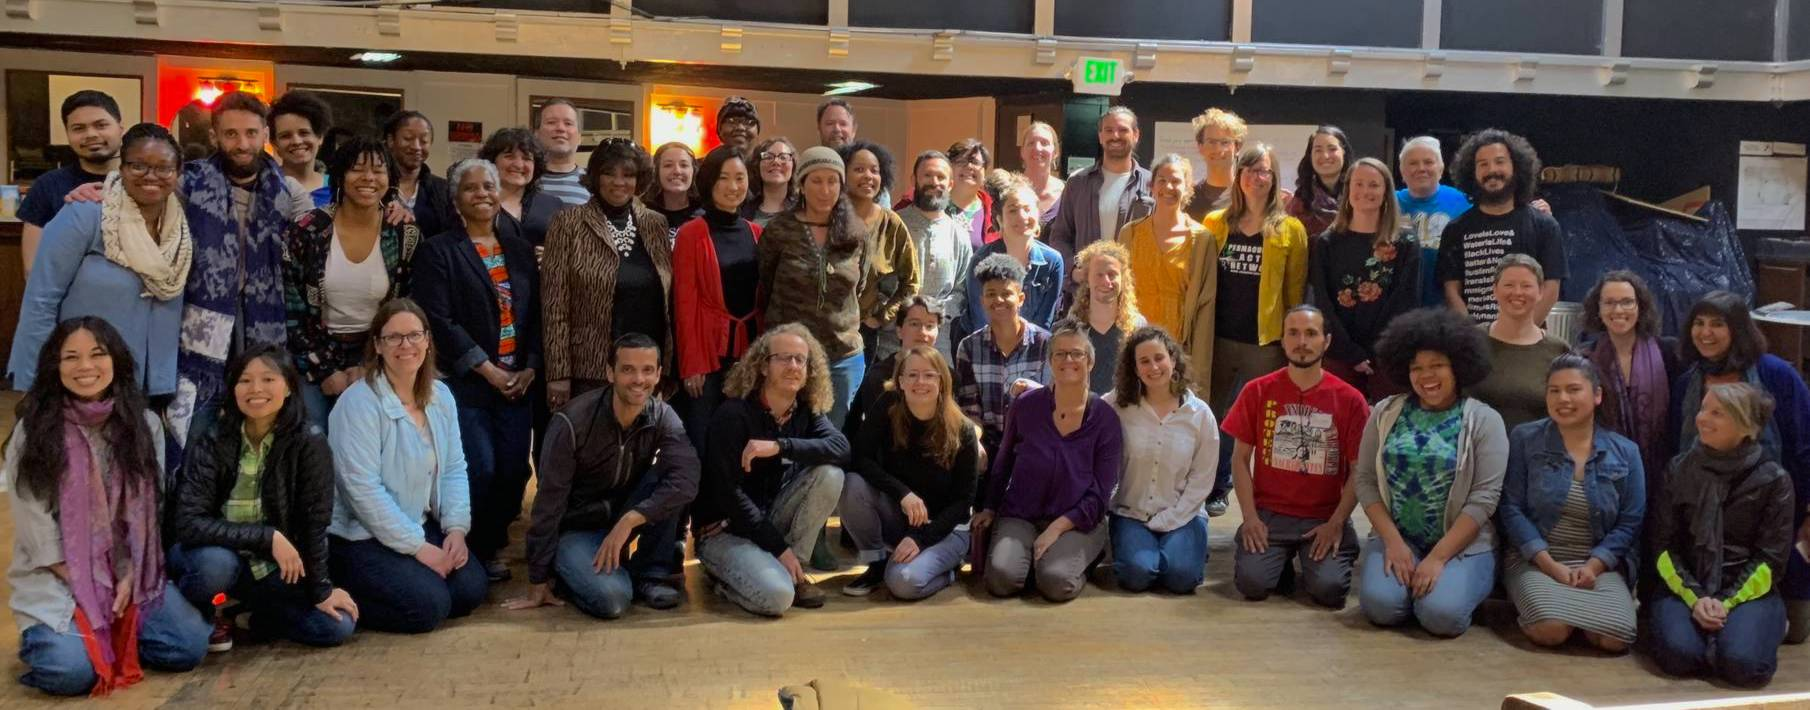 Participants in the 2019 Nonprofit Democracy Network